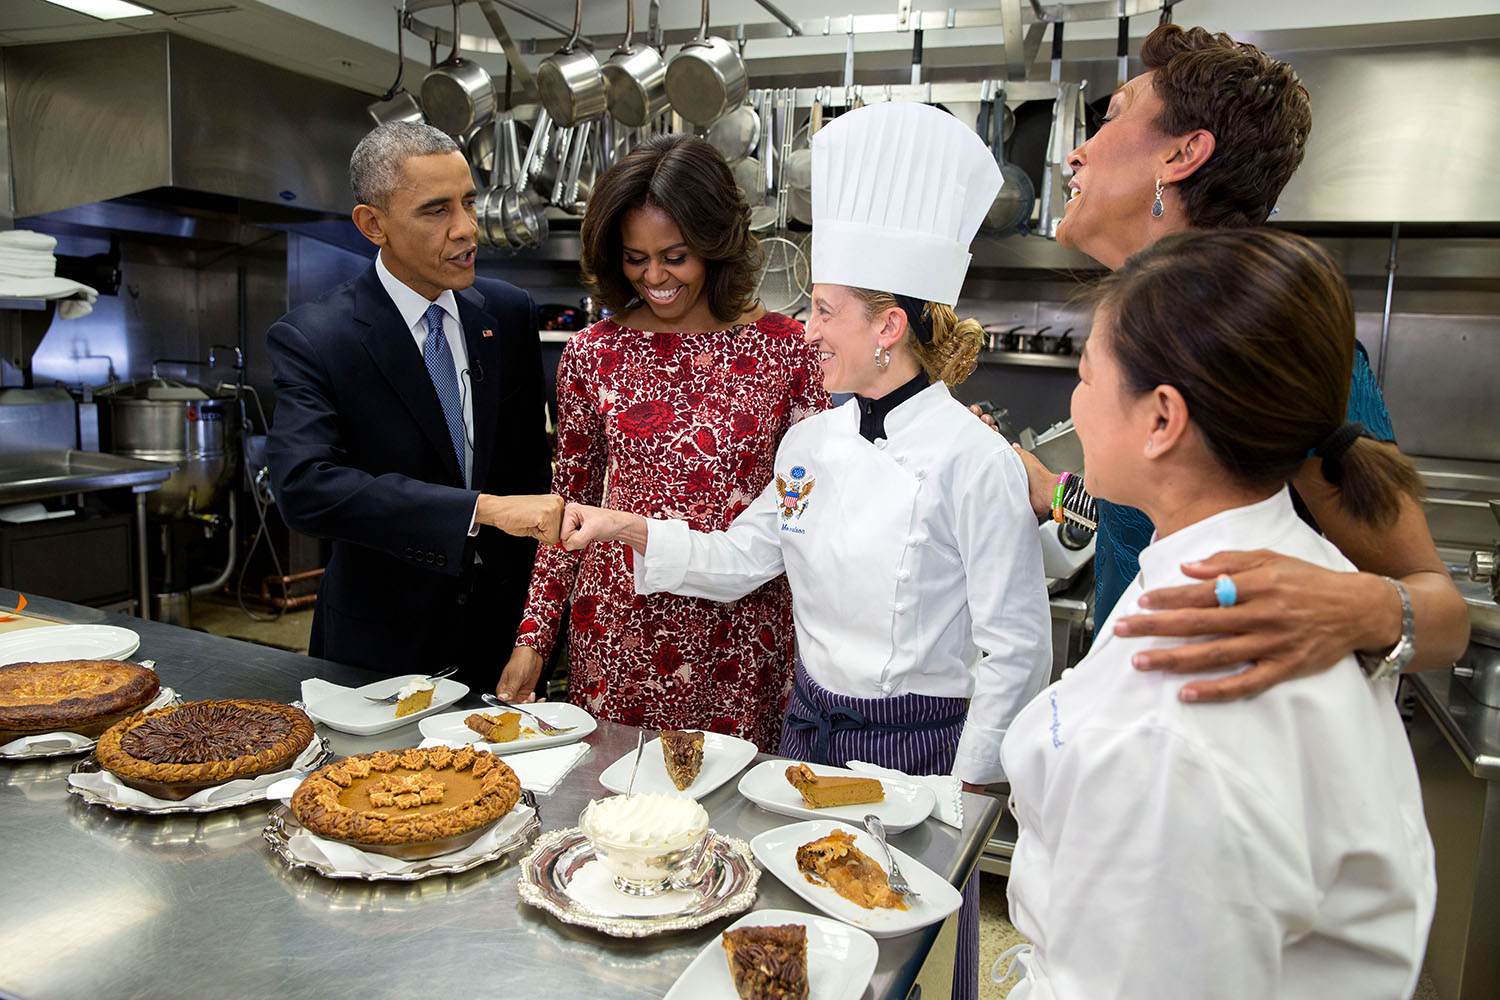 President Barack Obama fist bumps Executive Pastry Chef Susie Morrison after sampling pies with First Lady Michelle Obama, ABC News Anchor Robin Roberts and Executive Chef Cris Comerford during an interview about Thanksgiving in the White House Kitchen, Nov. 19, 2014.